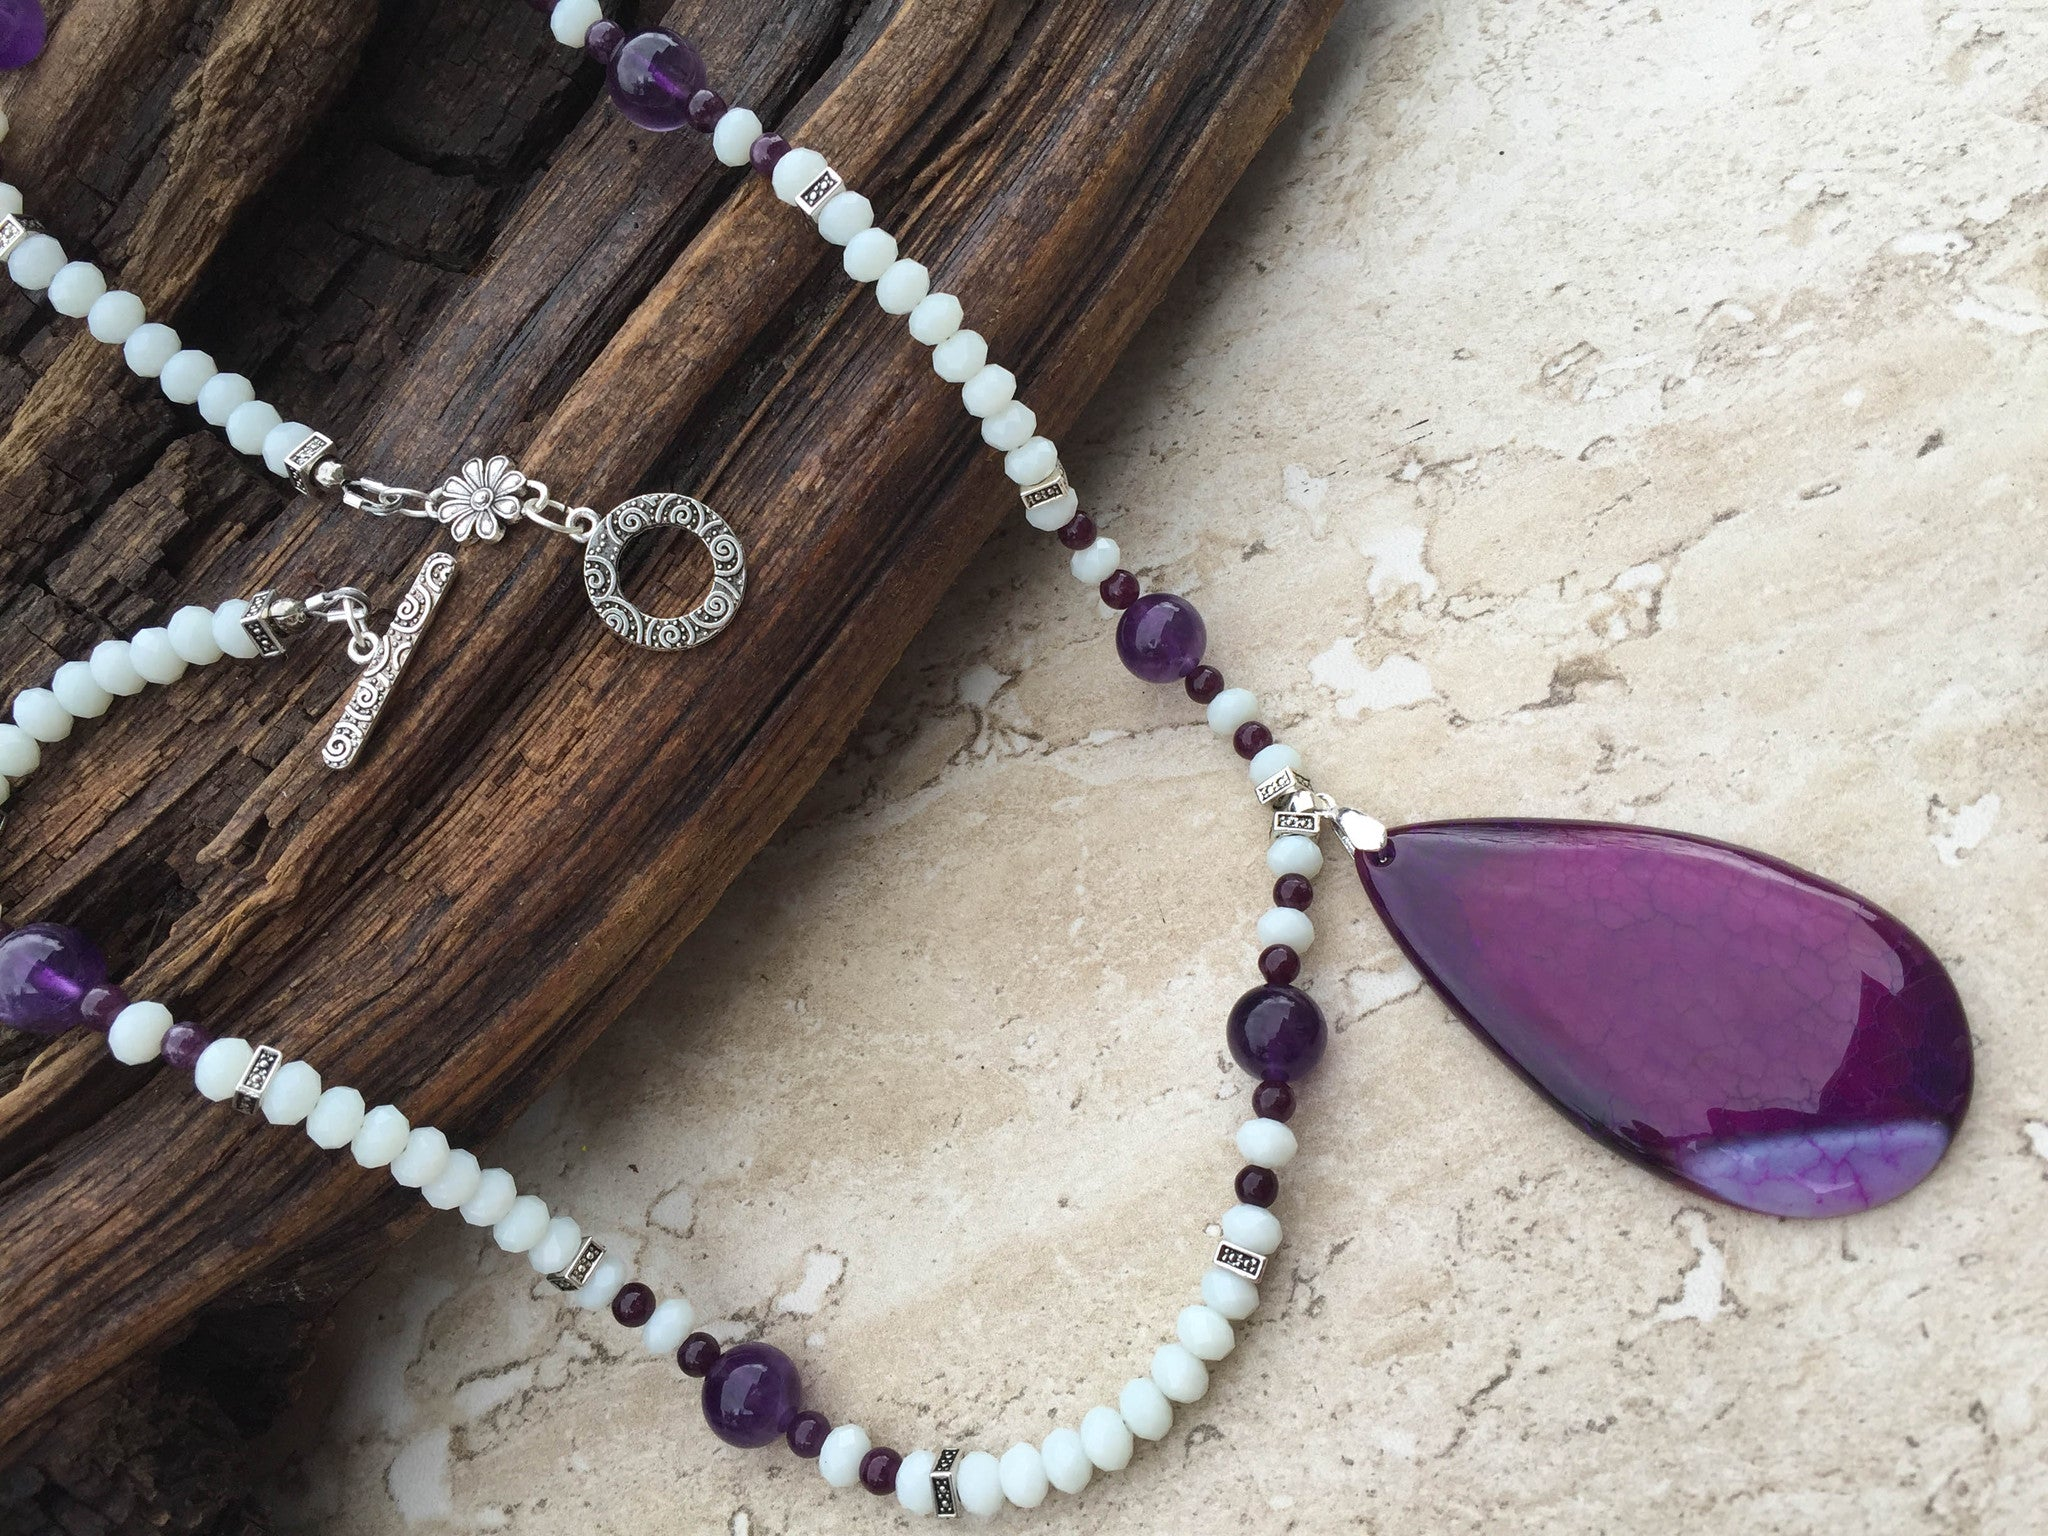 Agate necklace handmade jewelry artisan jewelry gifts under sold white and purple agate pendant necklace purple sage aloadofball Choice Image